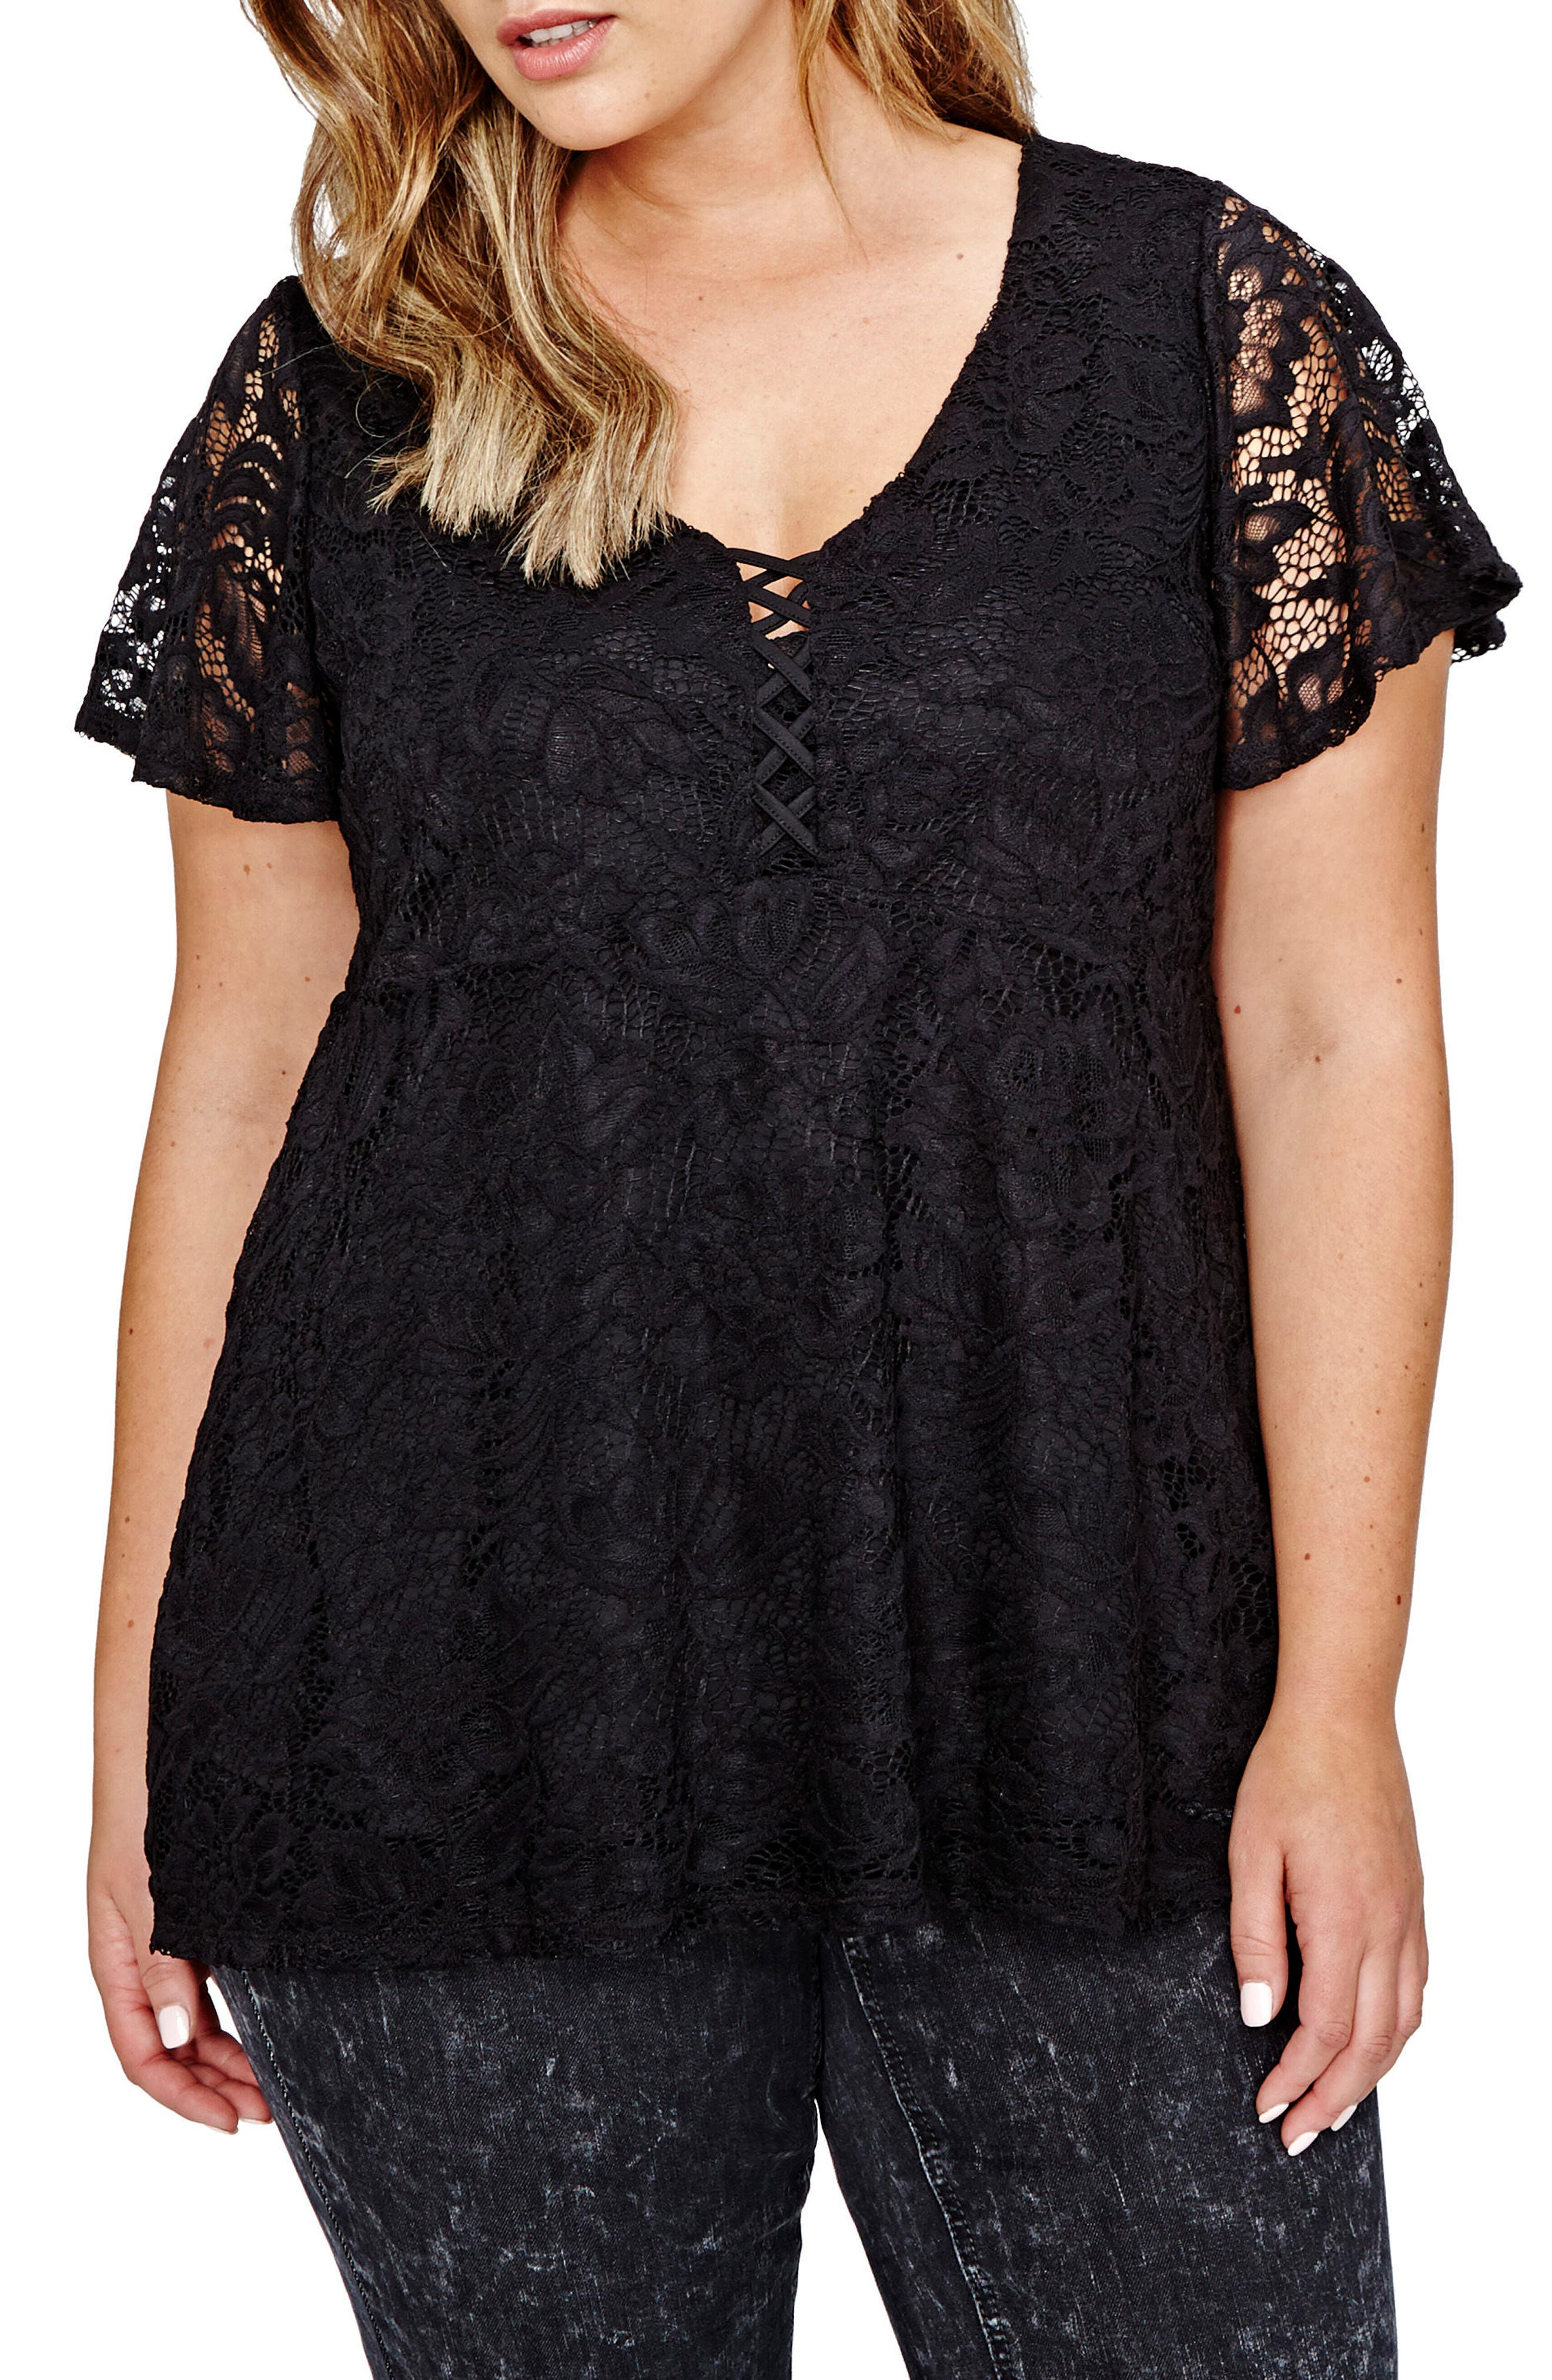 Main Image - ADDITION ELLE LOVE AND LEGEND V-Neck Lace Babydoll Top (Plus Size)